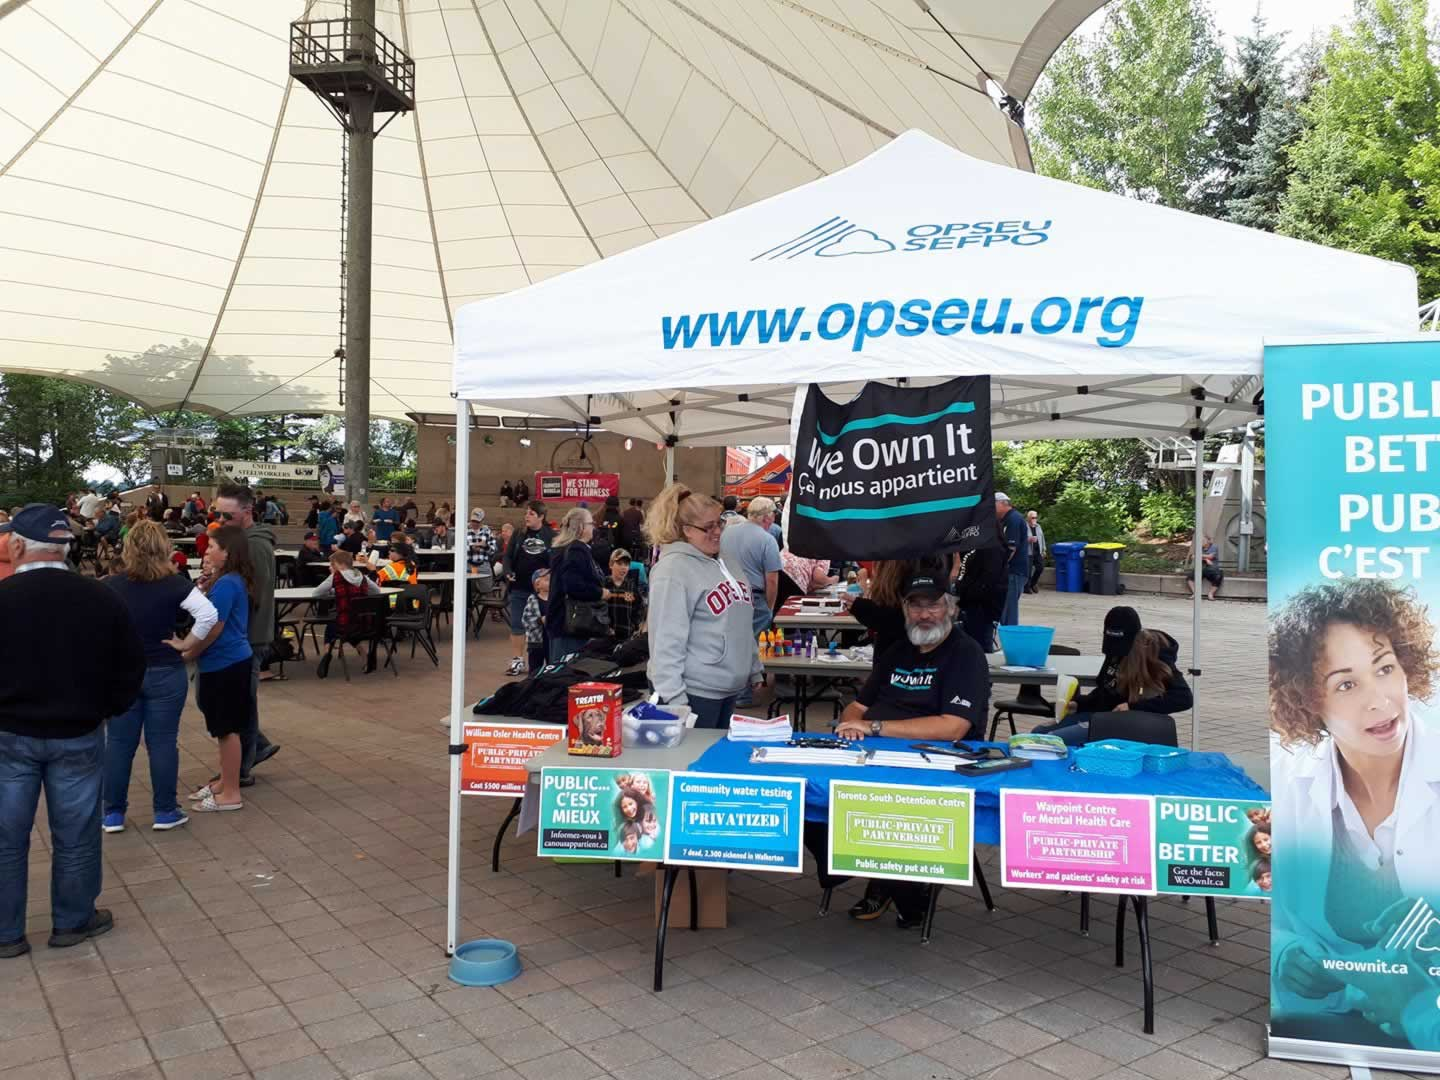 OPSEU tent at the Sault Ste Marie Labour Day